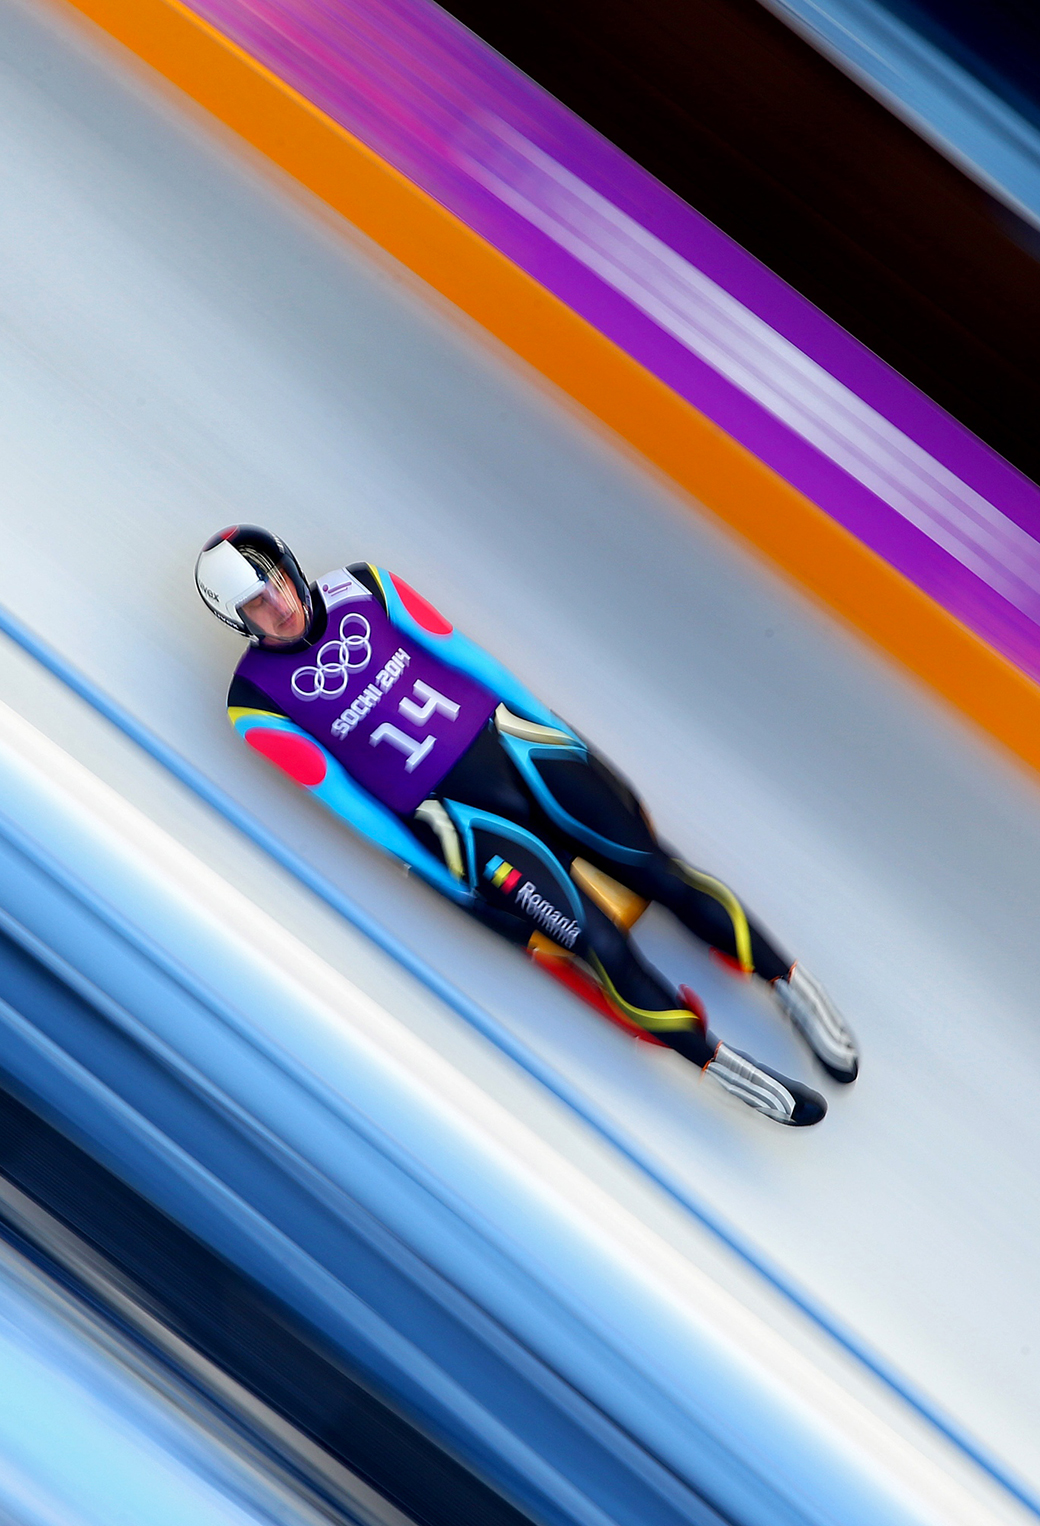 Sochi 2014 Luge 3Wallpapers iphone Parallax Sochi 2014 Luge